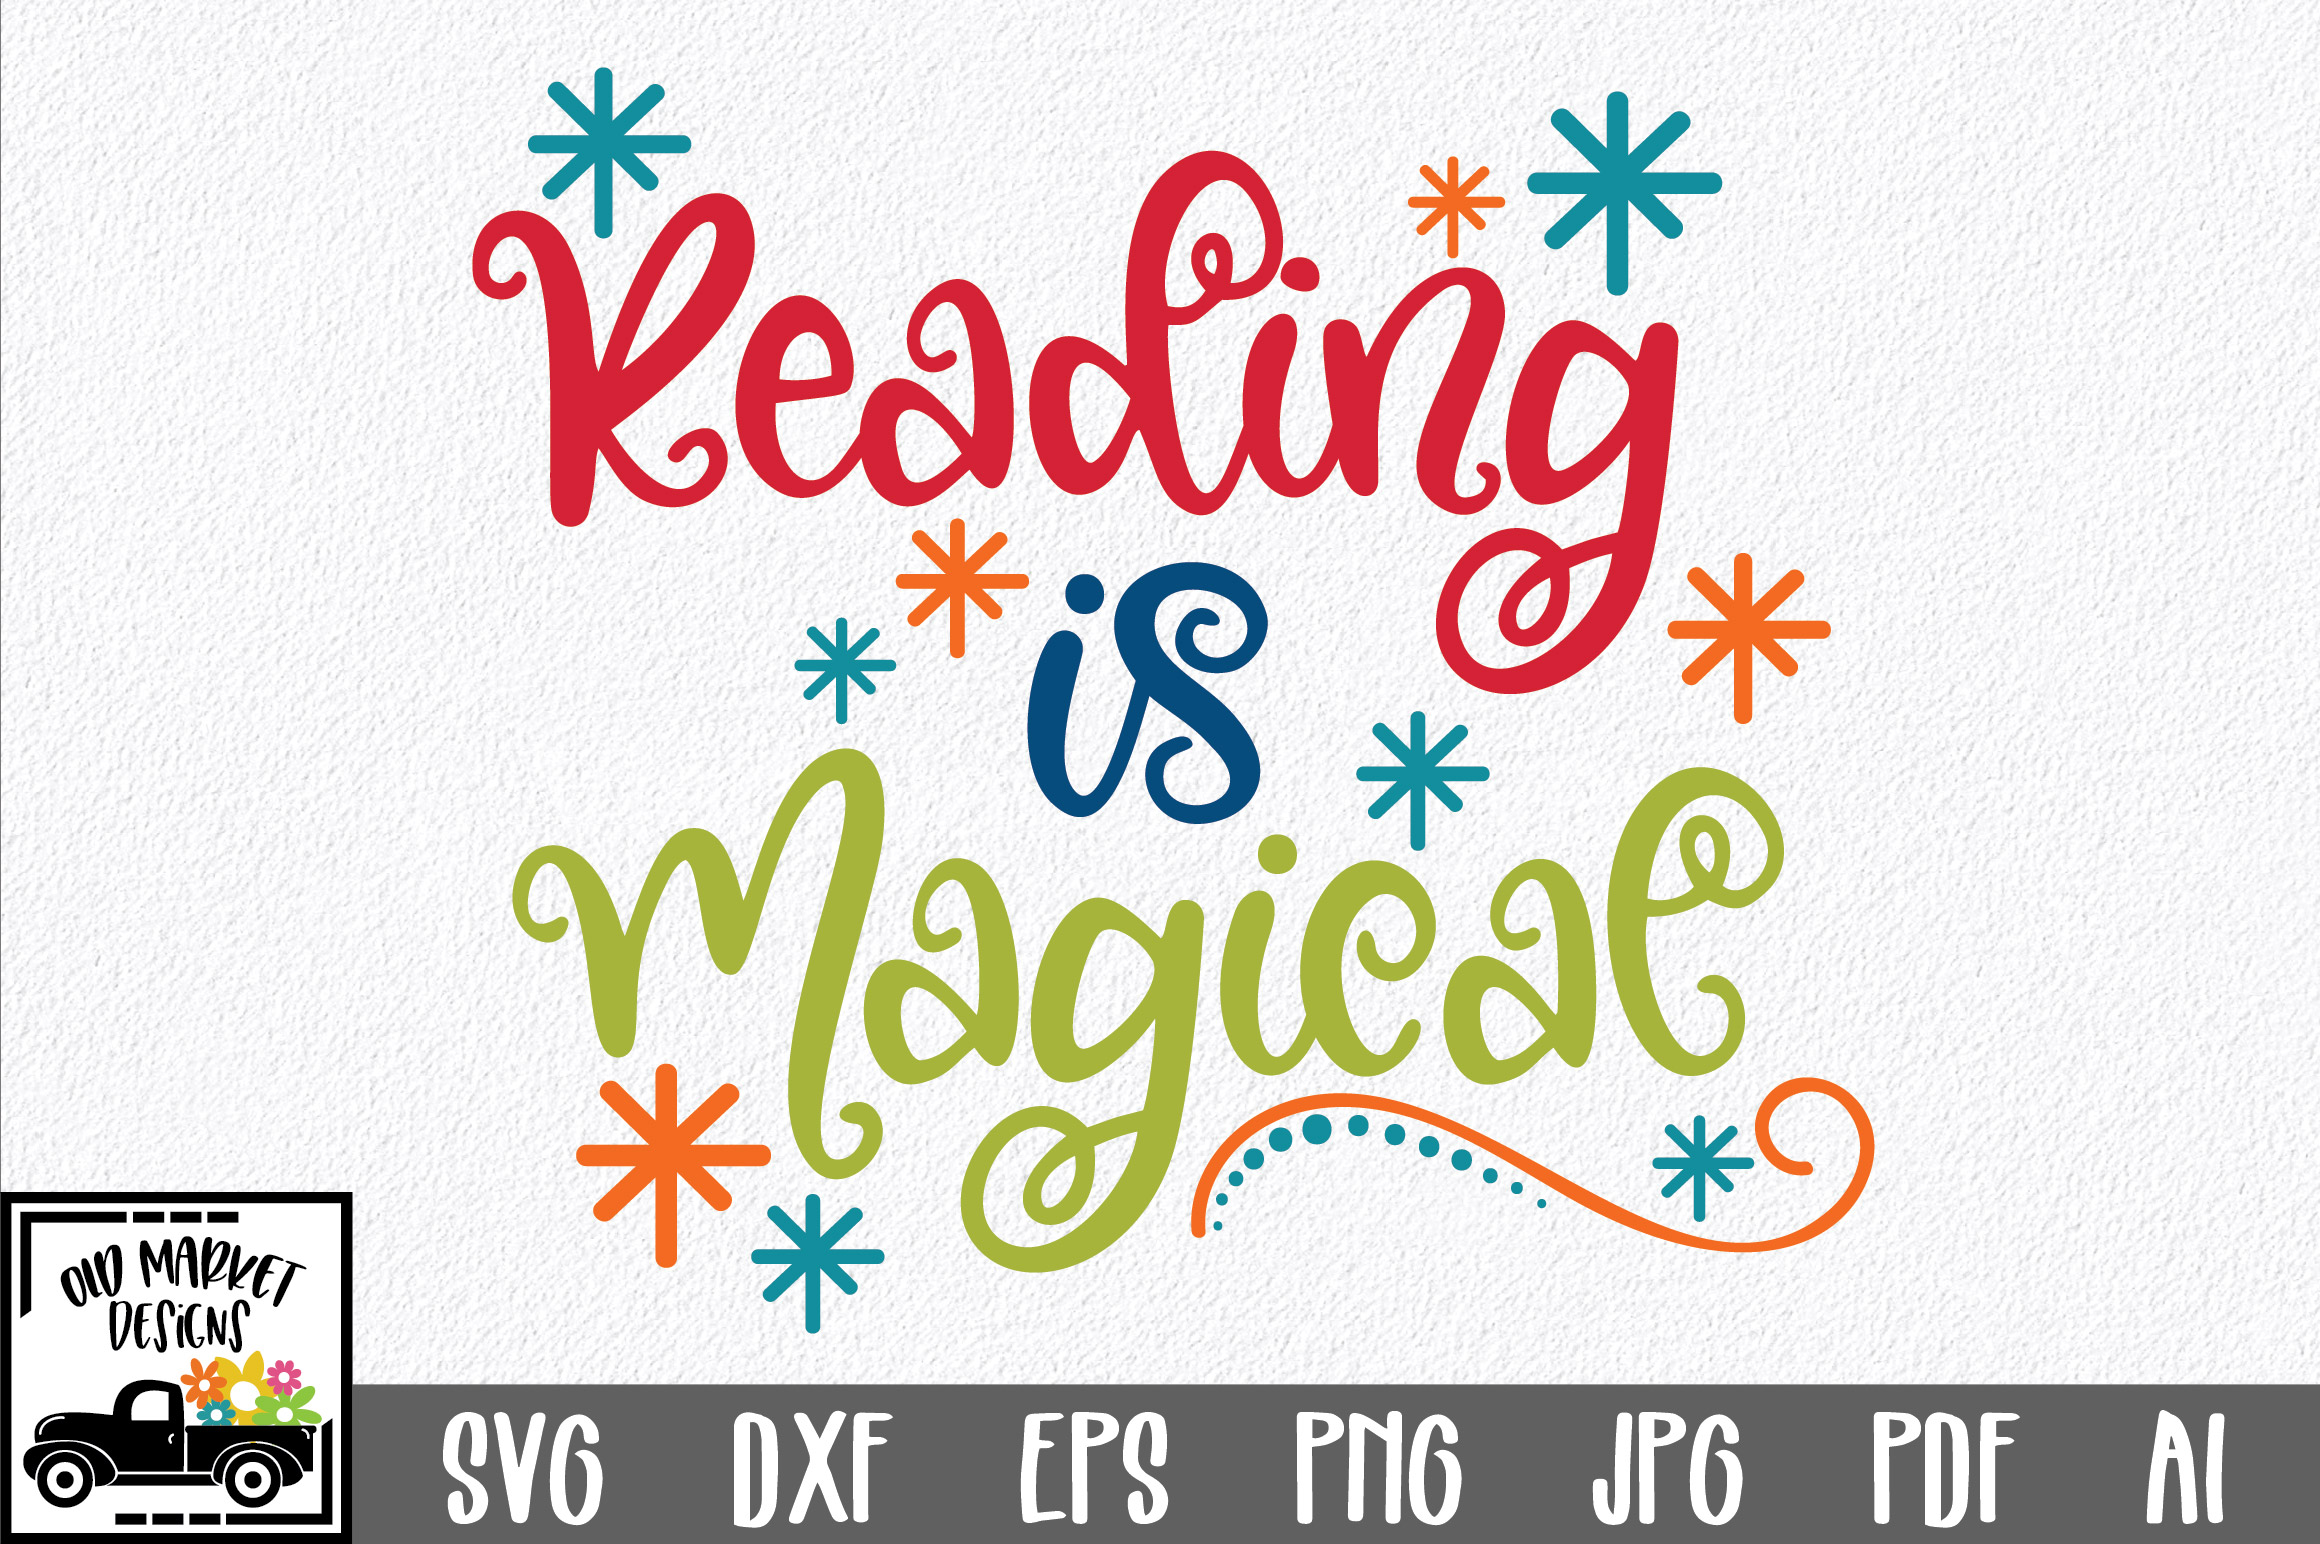 Download Free Reading Is Magical Svg Cut File Graphic By Oldmarketdesigns for Cricut Explore, Silhouette and other cutting machines.